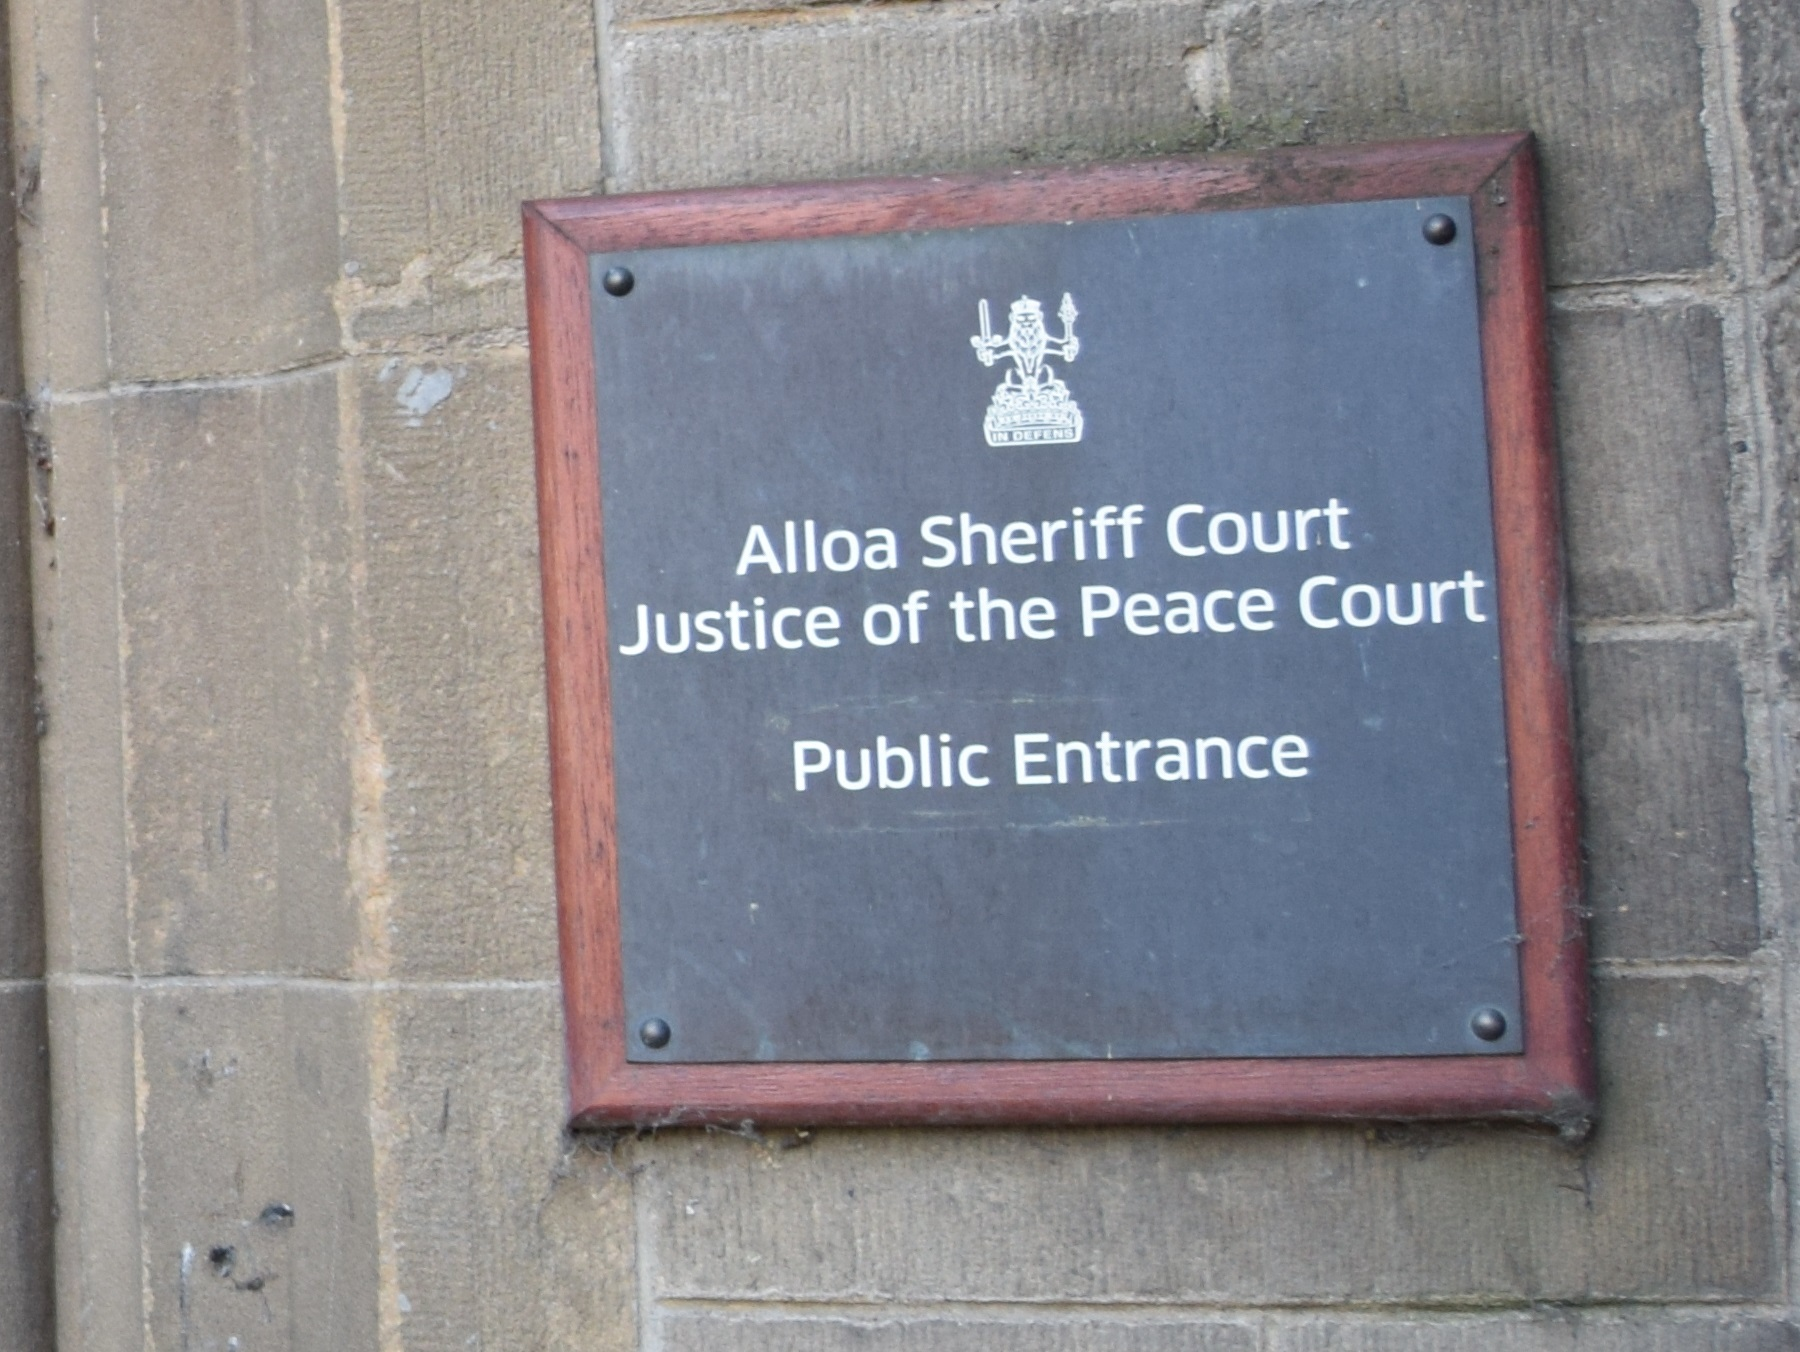 The case was brought before Alloa Sheriff Court last week